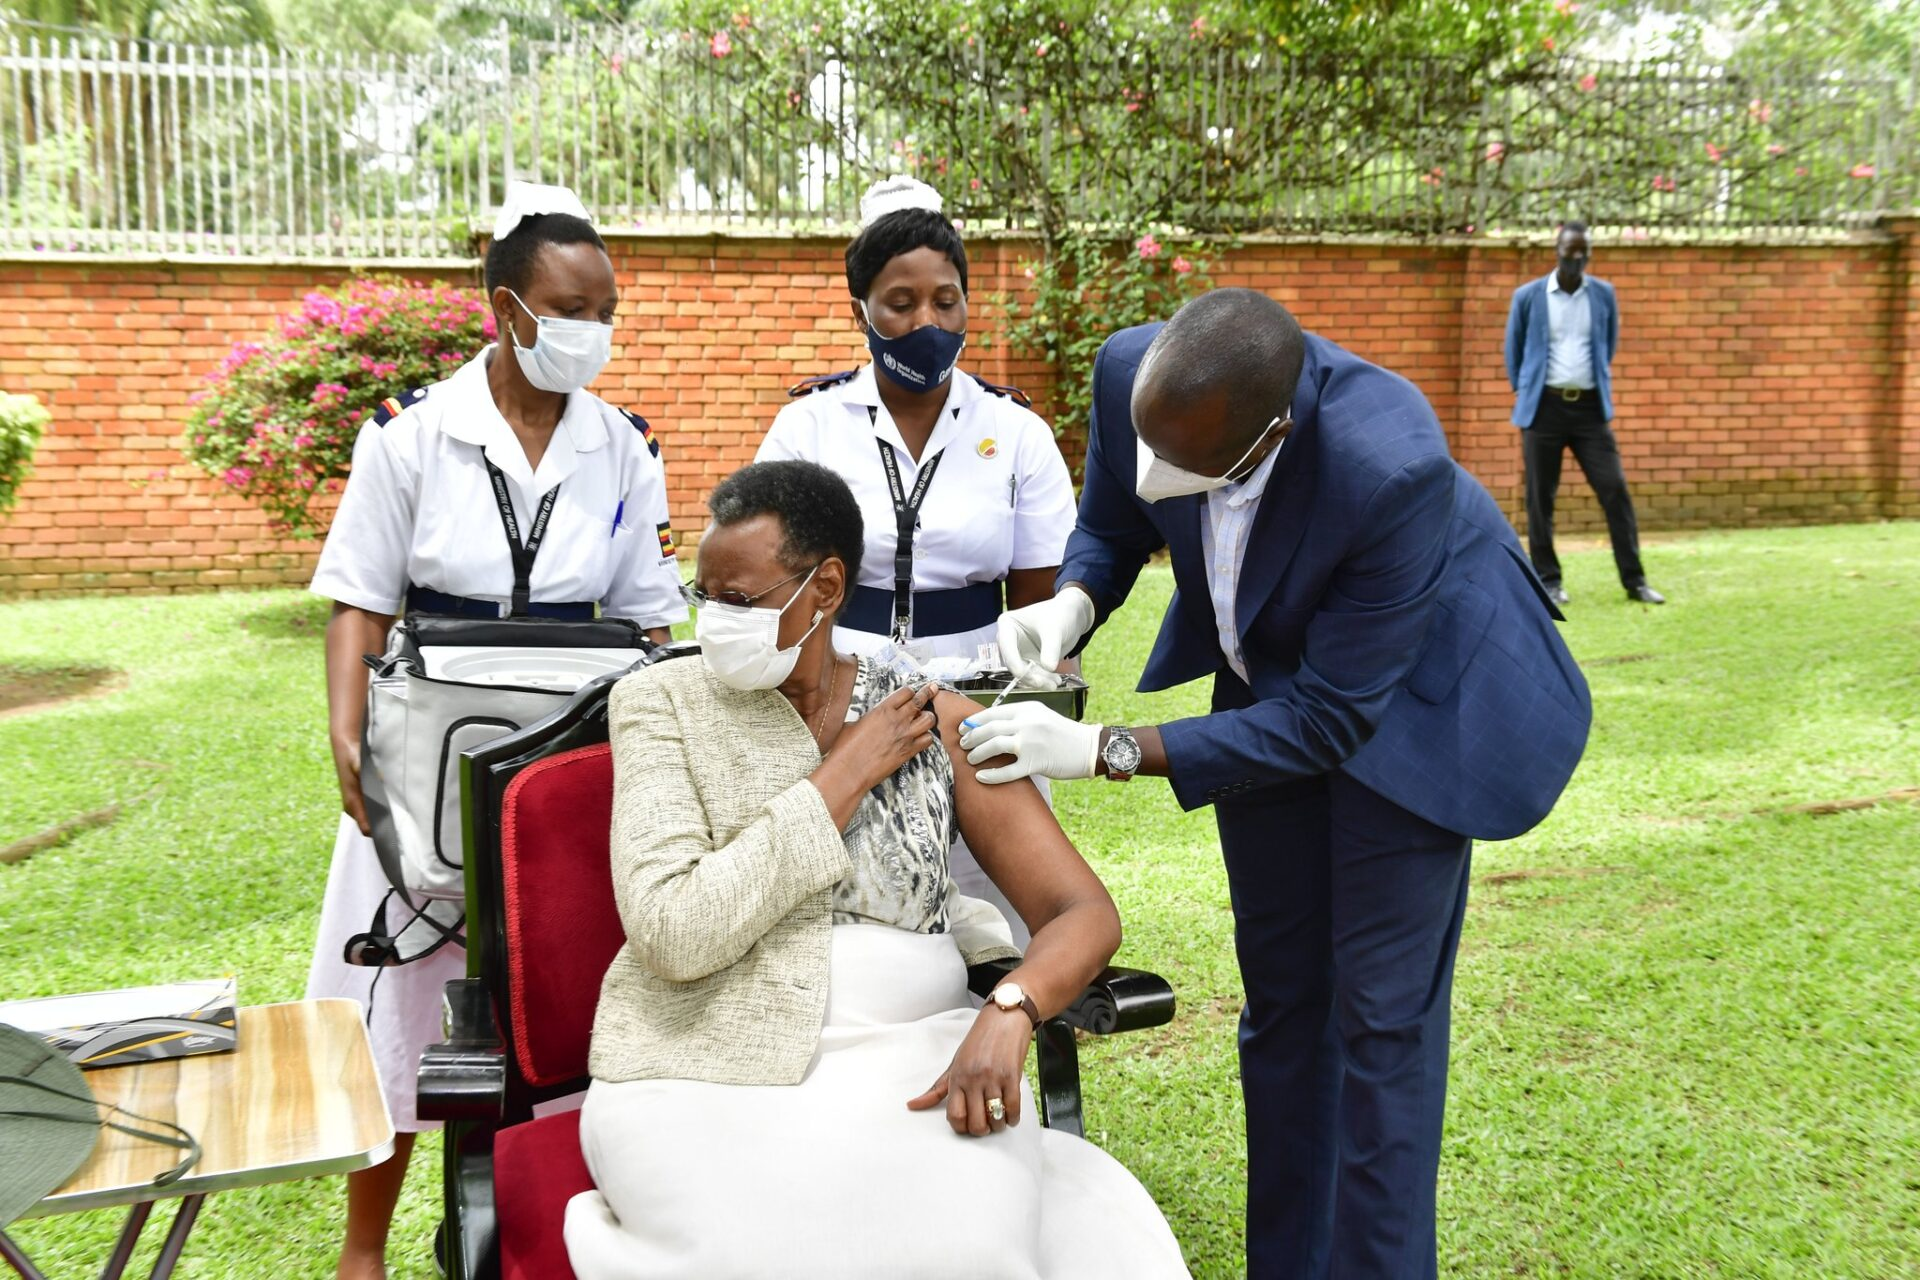 Museveni Encourages Ugandans To Take COVID-19 Vaccine After He, First Lady Got Vaccinated